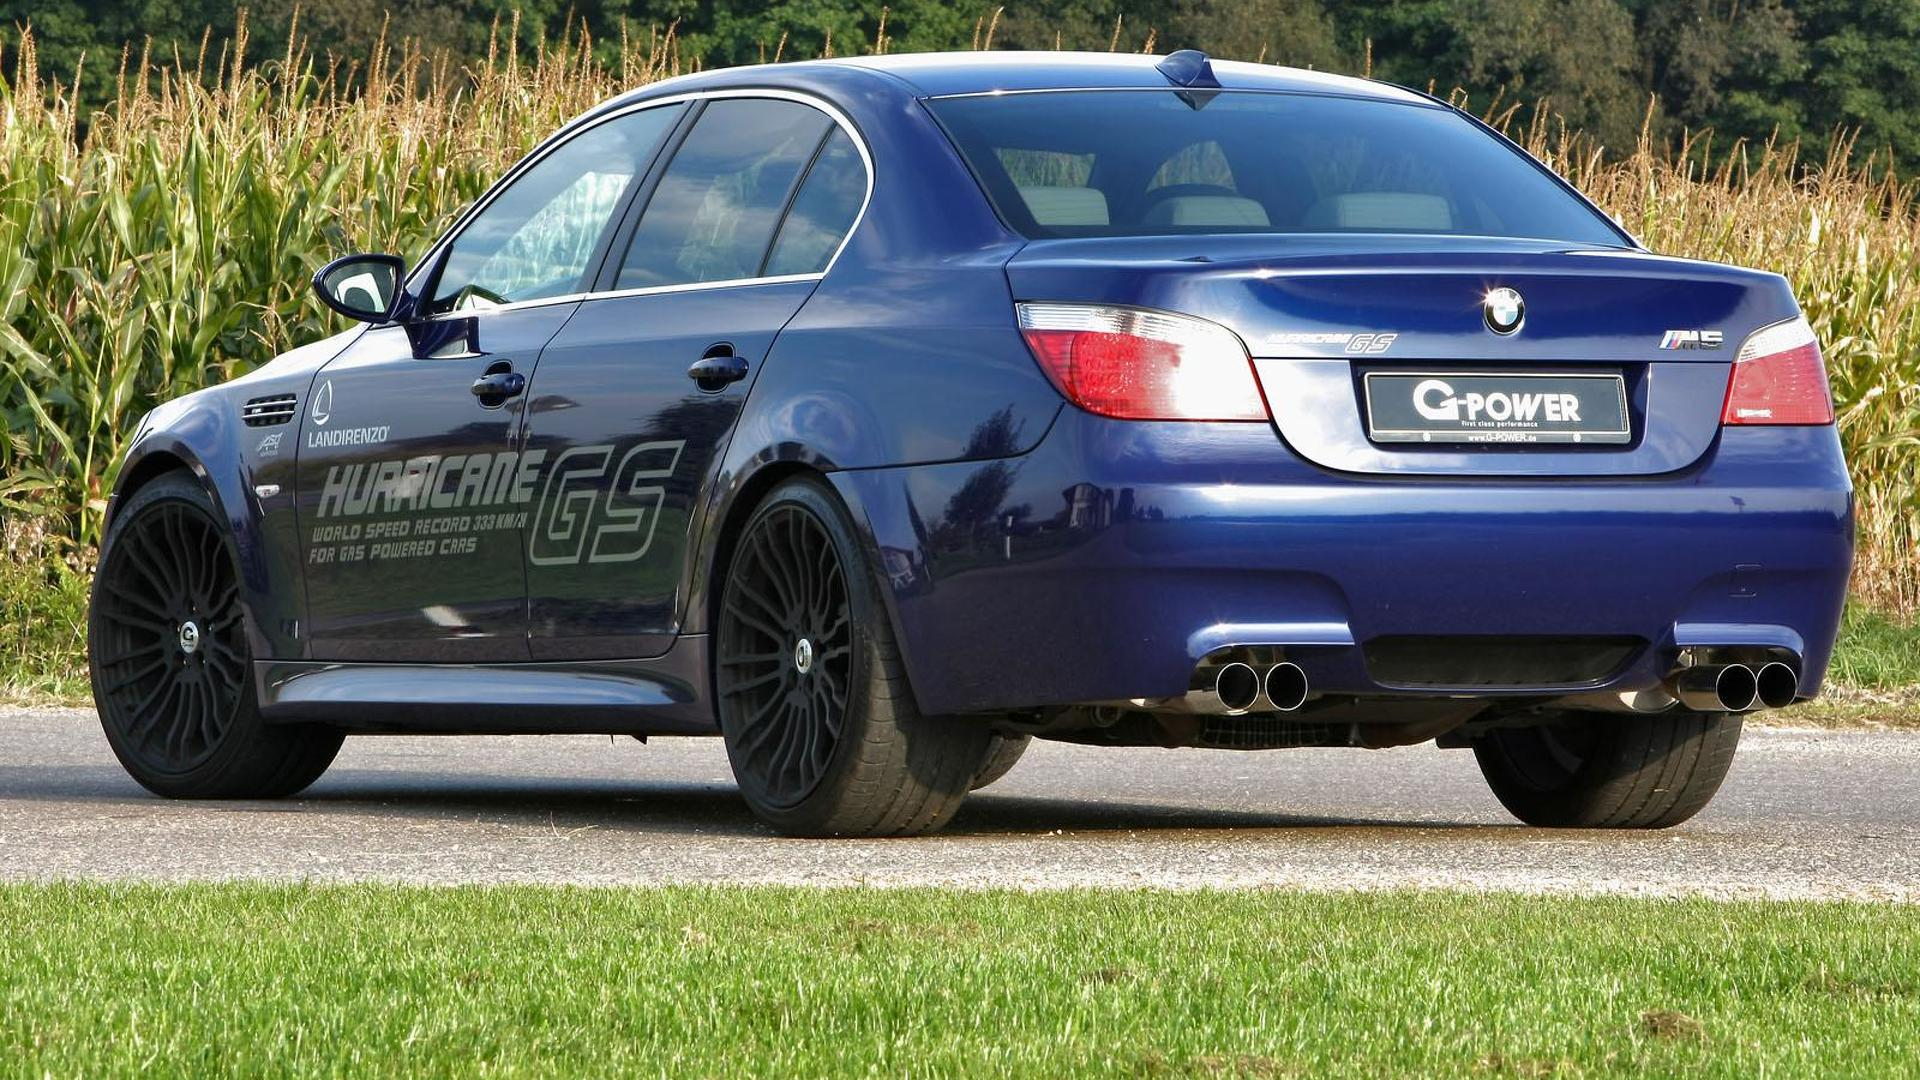 G Power Bmw M5 Hurricane Gs The Worlds Fastest Lpg Vehicle